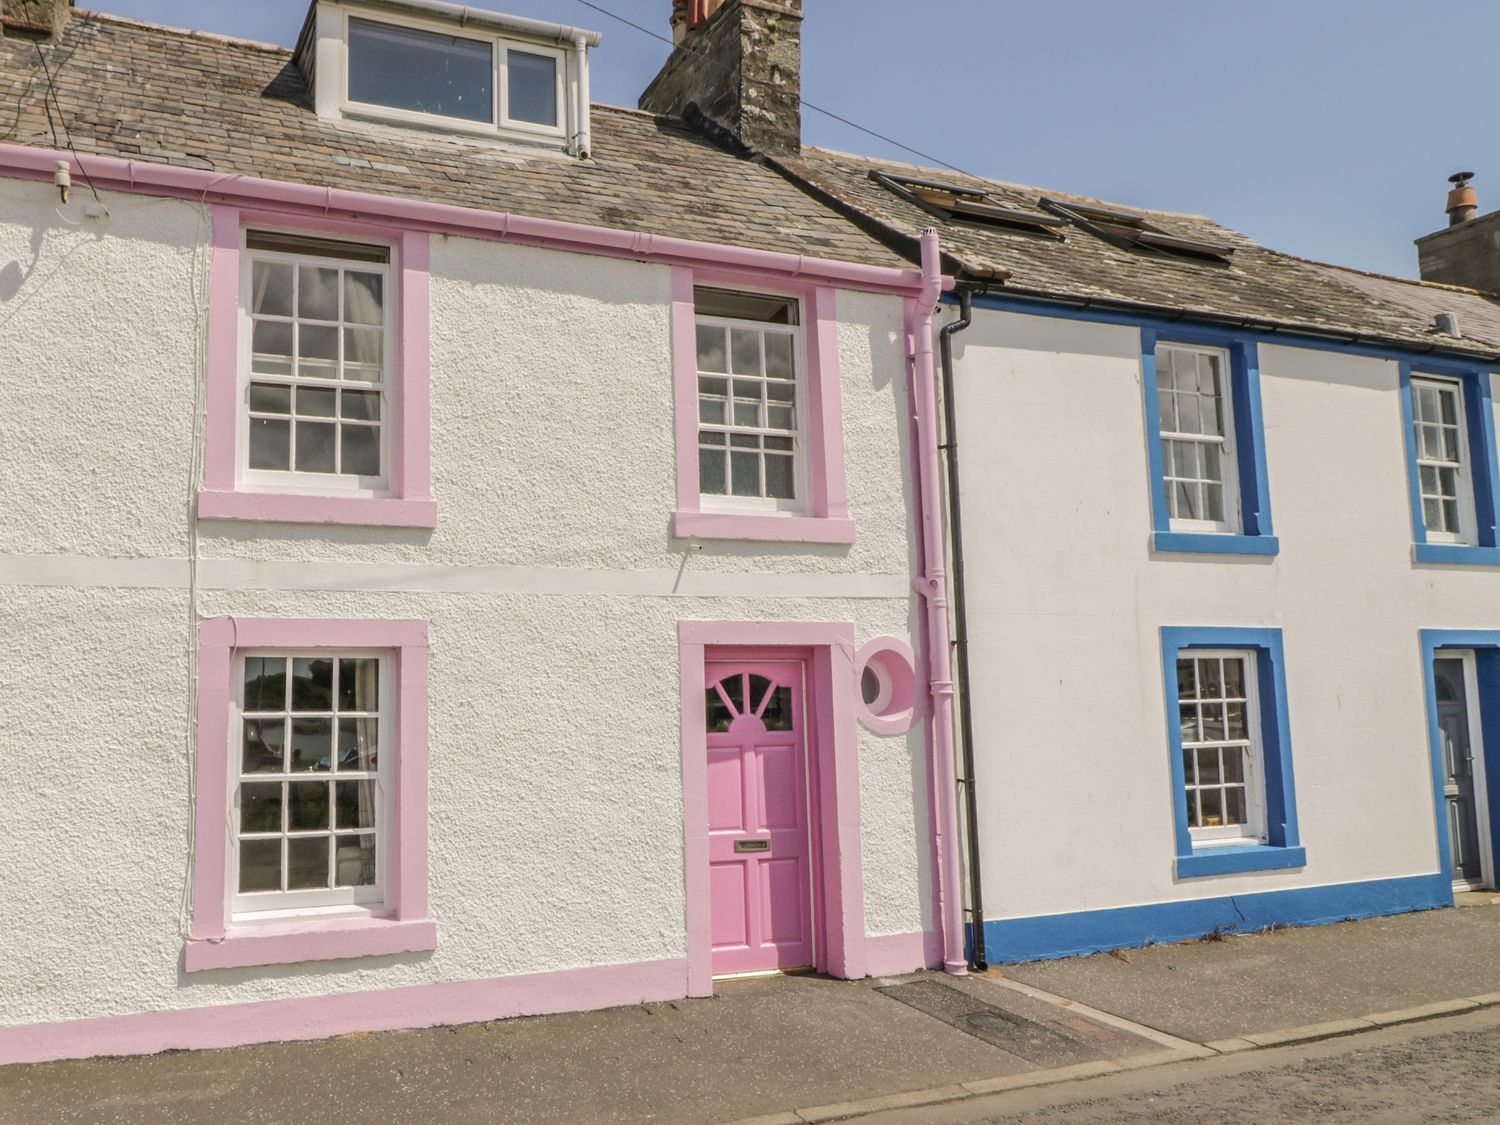 The Pink House, Dumfries and Galloway